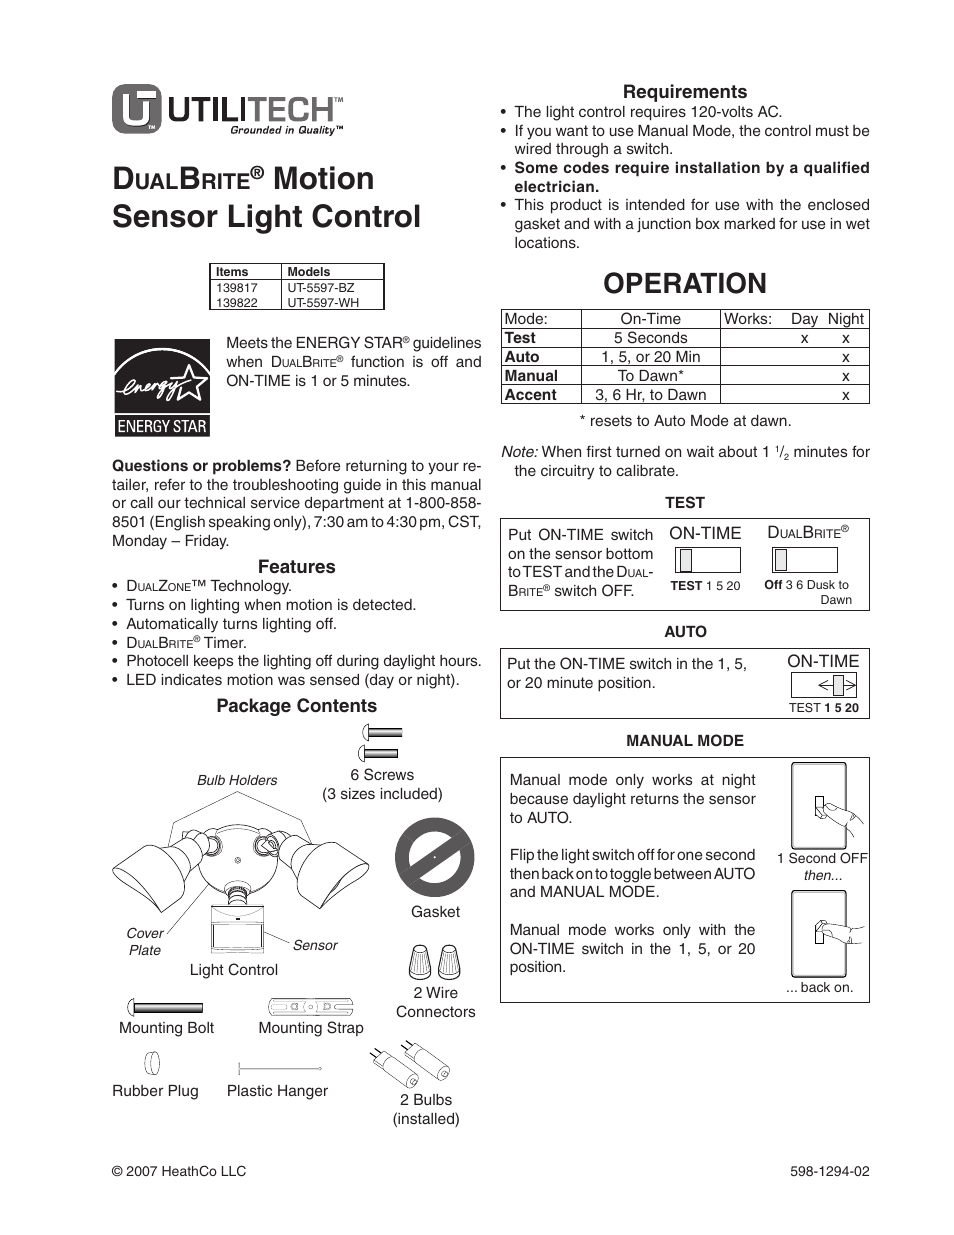 Heath Zenith Dualbrite Motion Sensor Light Control Ut 5597 Wh User 2wire Install Diagram Manual 20 Pages Also For Bz